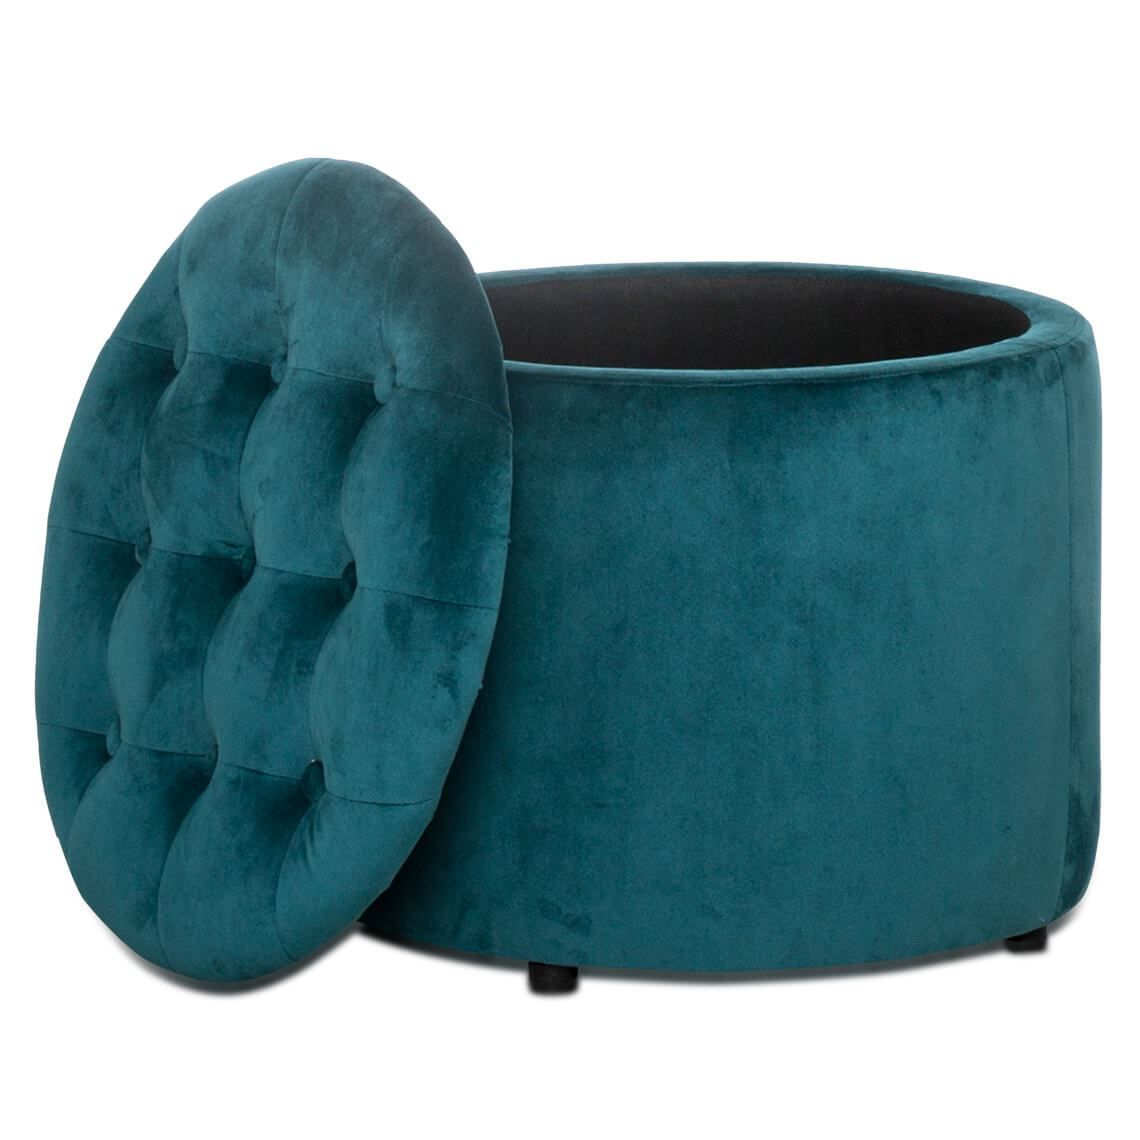 Admirable Flemming Velvet Storage Ottoman Turquoise In 2019 Ocoug Best Dining Table And Chair Ideas Images Ocougorg